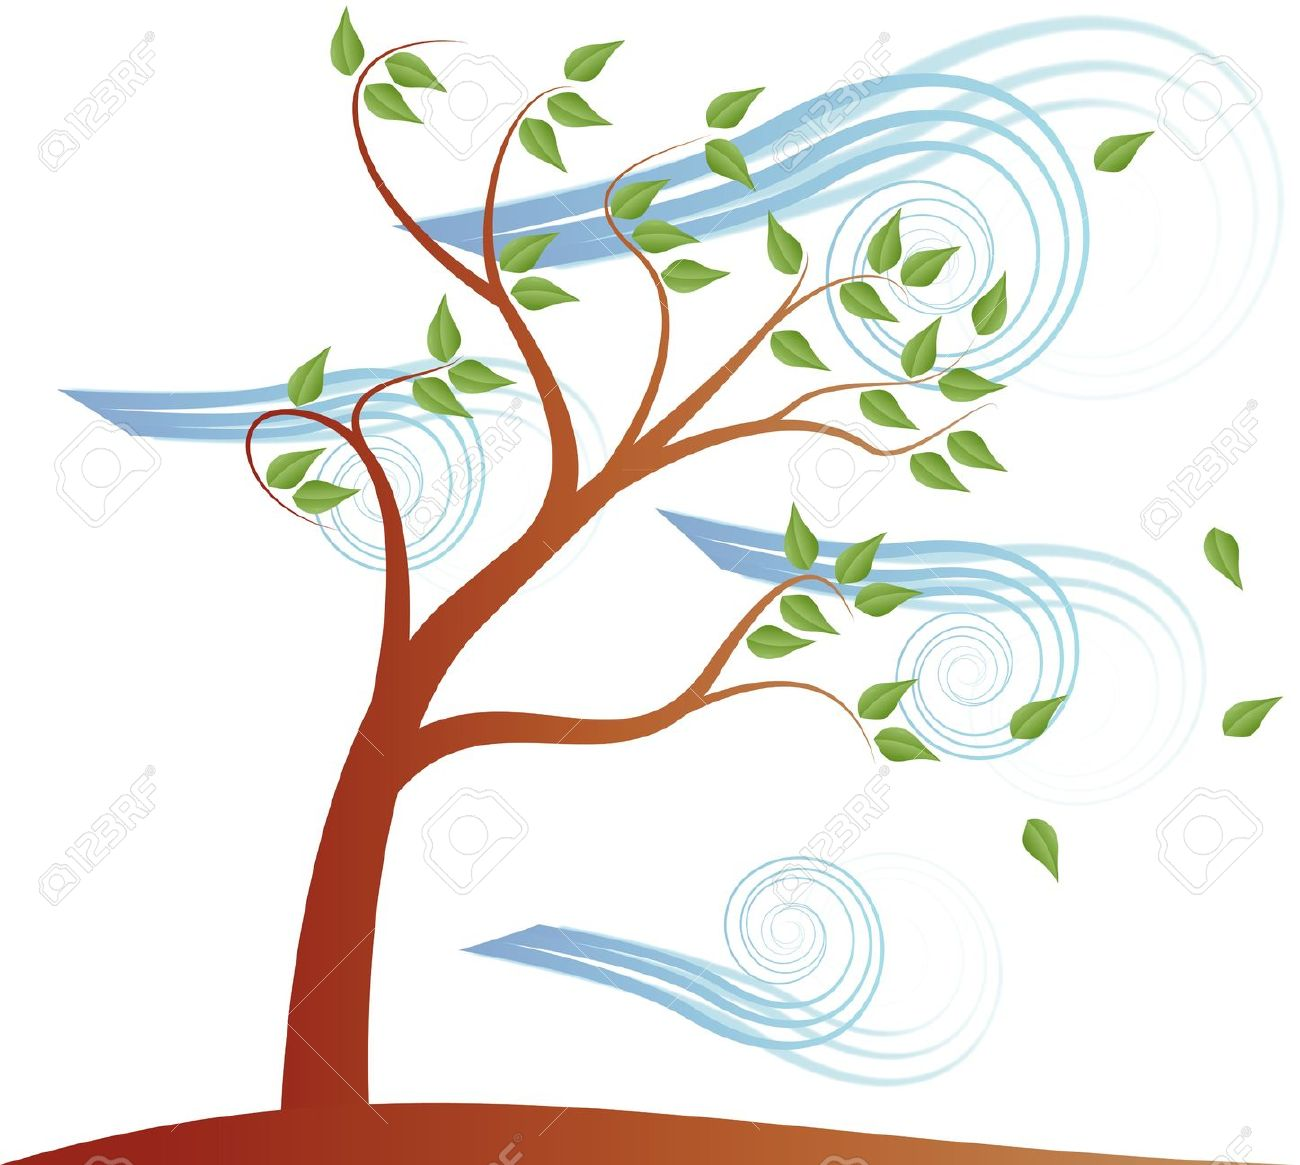 Tree clipart wind blowing #6